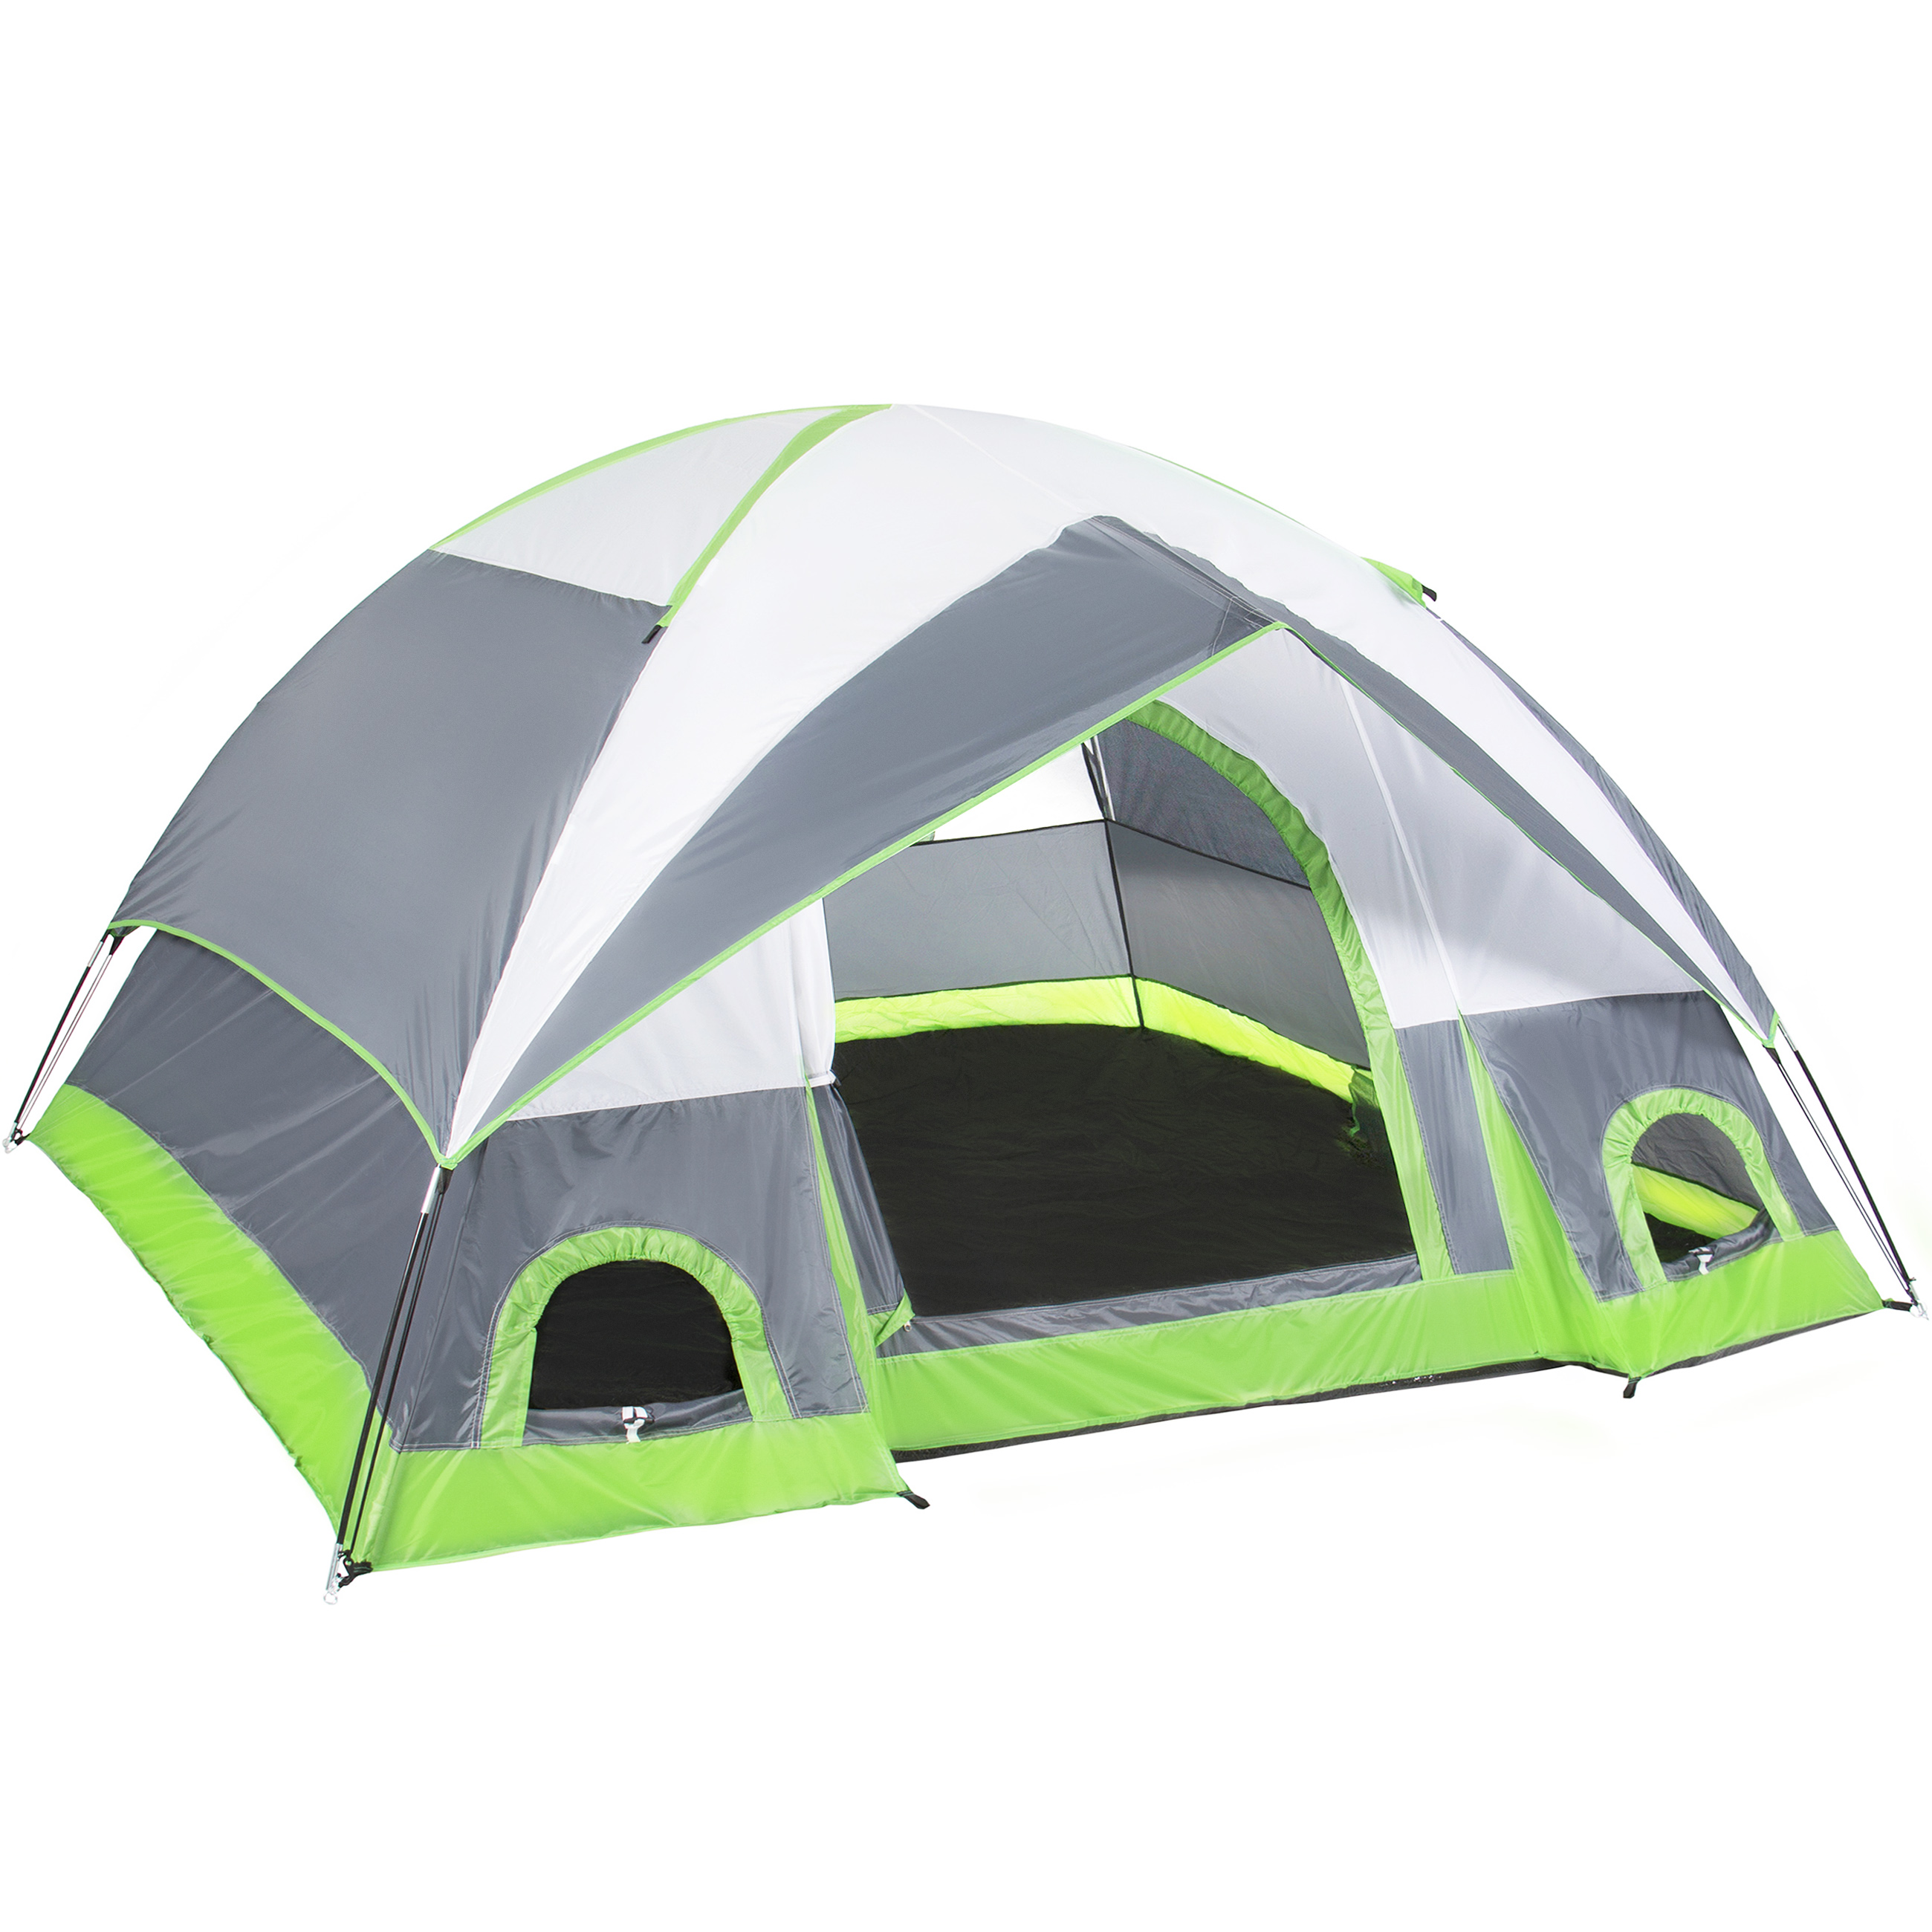 Best Choice Products 4 Person C&ing Tent Family Outdoor Sleeping Dome Water Resistant W/ Carry  sc 1 st  Walmart & Best Choice Products 4 Person Camping Tent Family Outdoor Sleeping ...